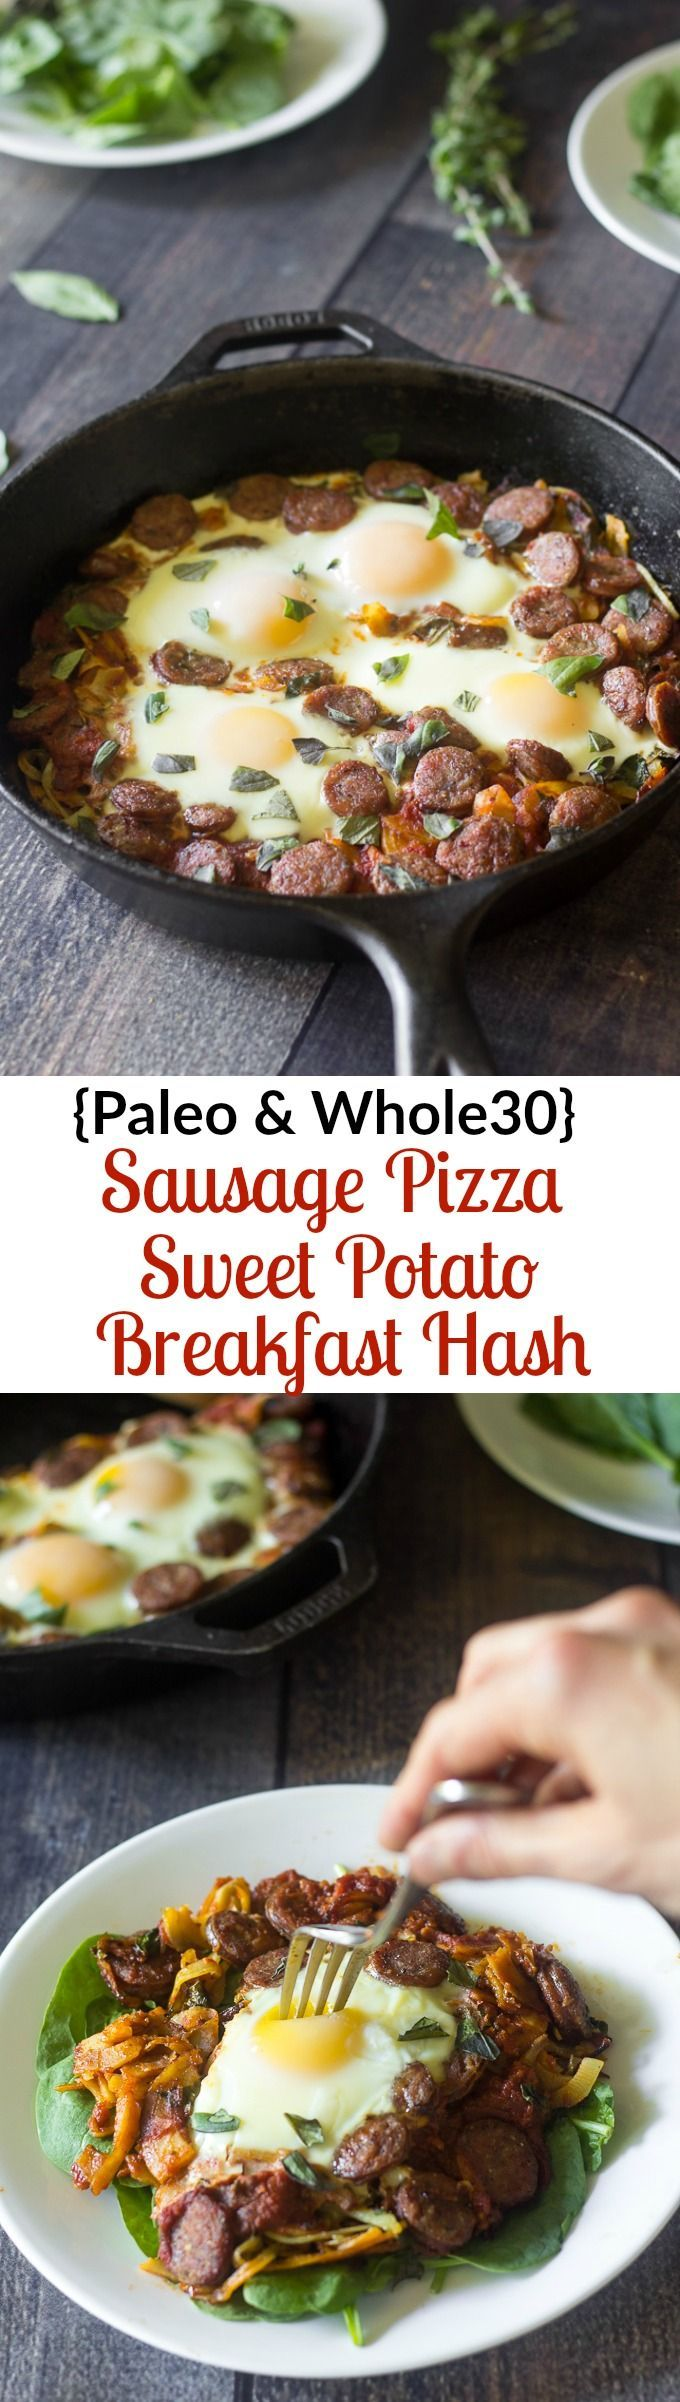 Paleo and whole30 sausage pizza breakfast hash with spiralized or shredded sweet potatoes and eggs baked right in. Seriously delicious and…